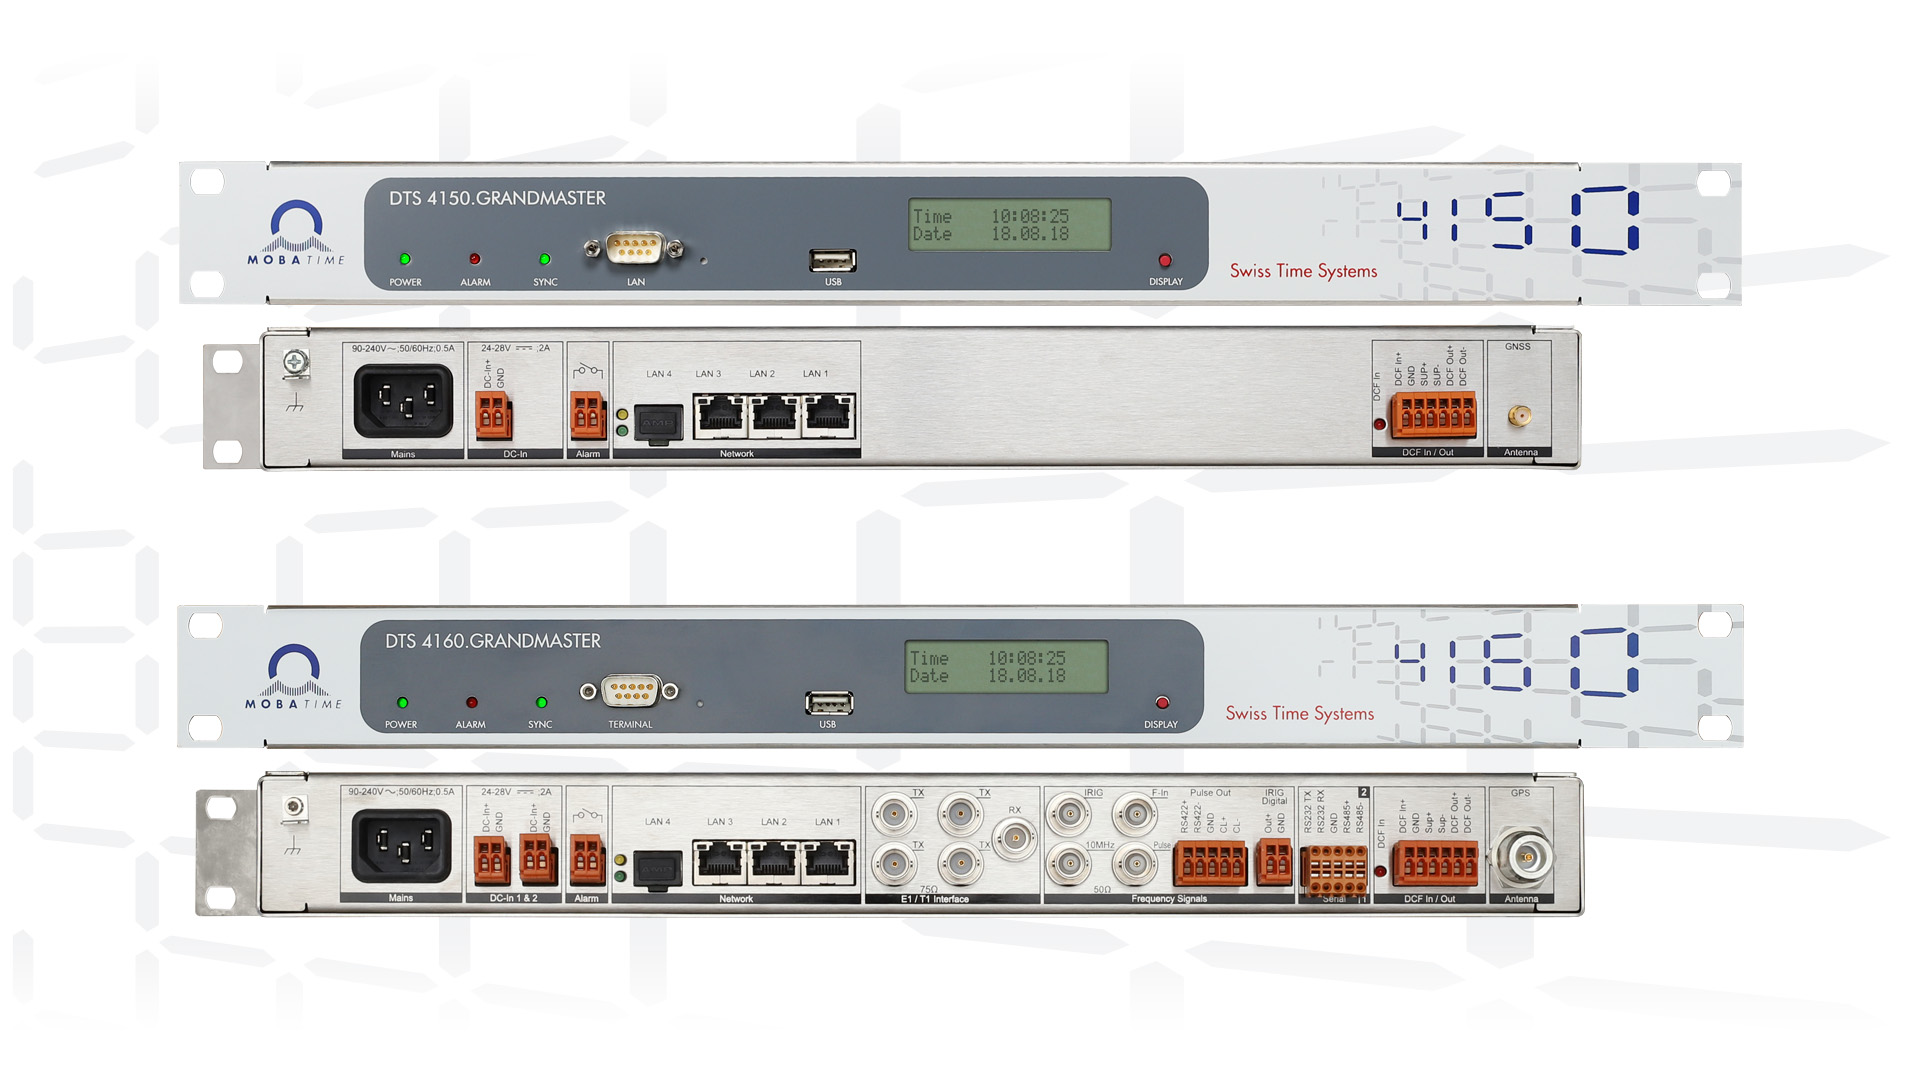 DTS 4160i DTS 4150, Front and back view, PTP, NTP, time server , grandmaster